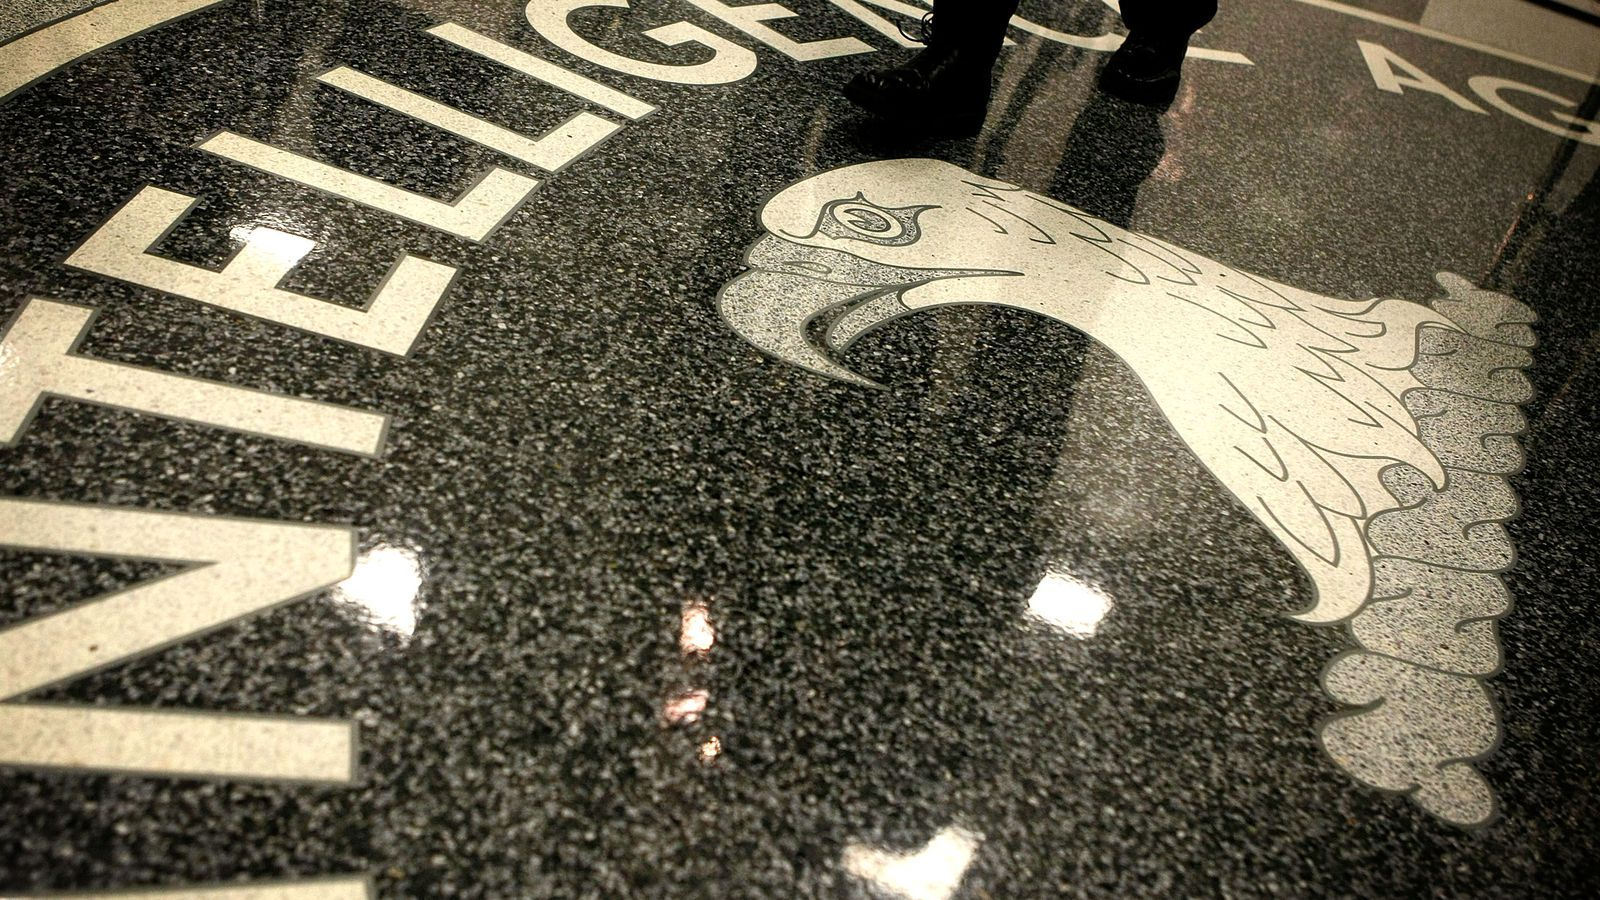 The CIA built a fake software update system to spy on intel partners